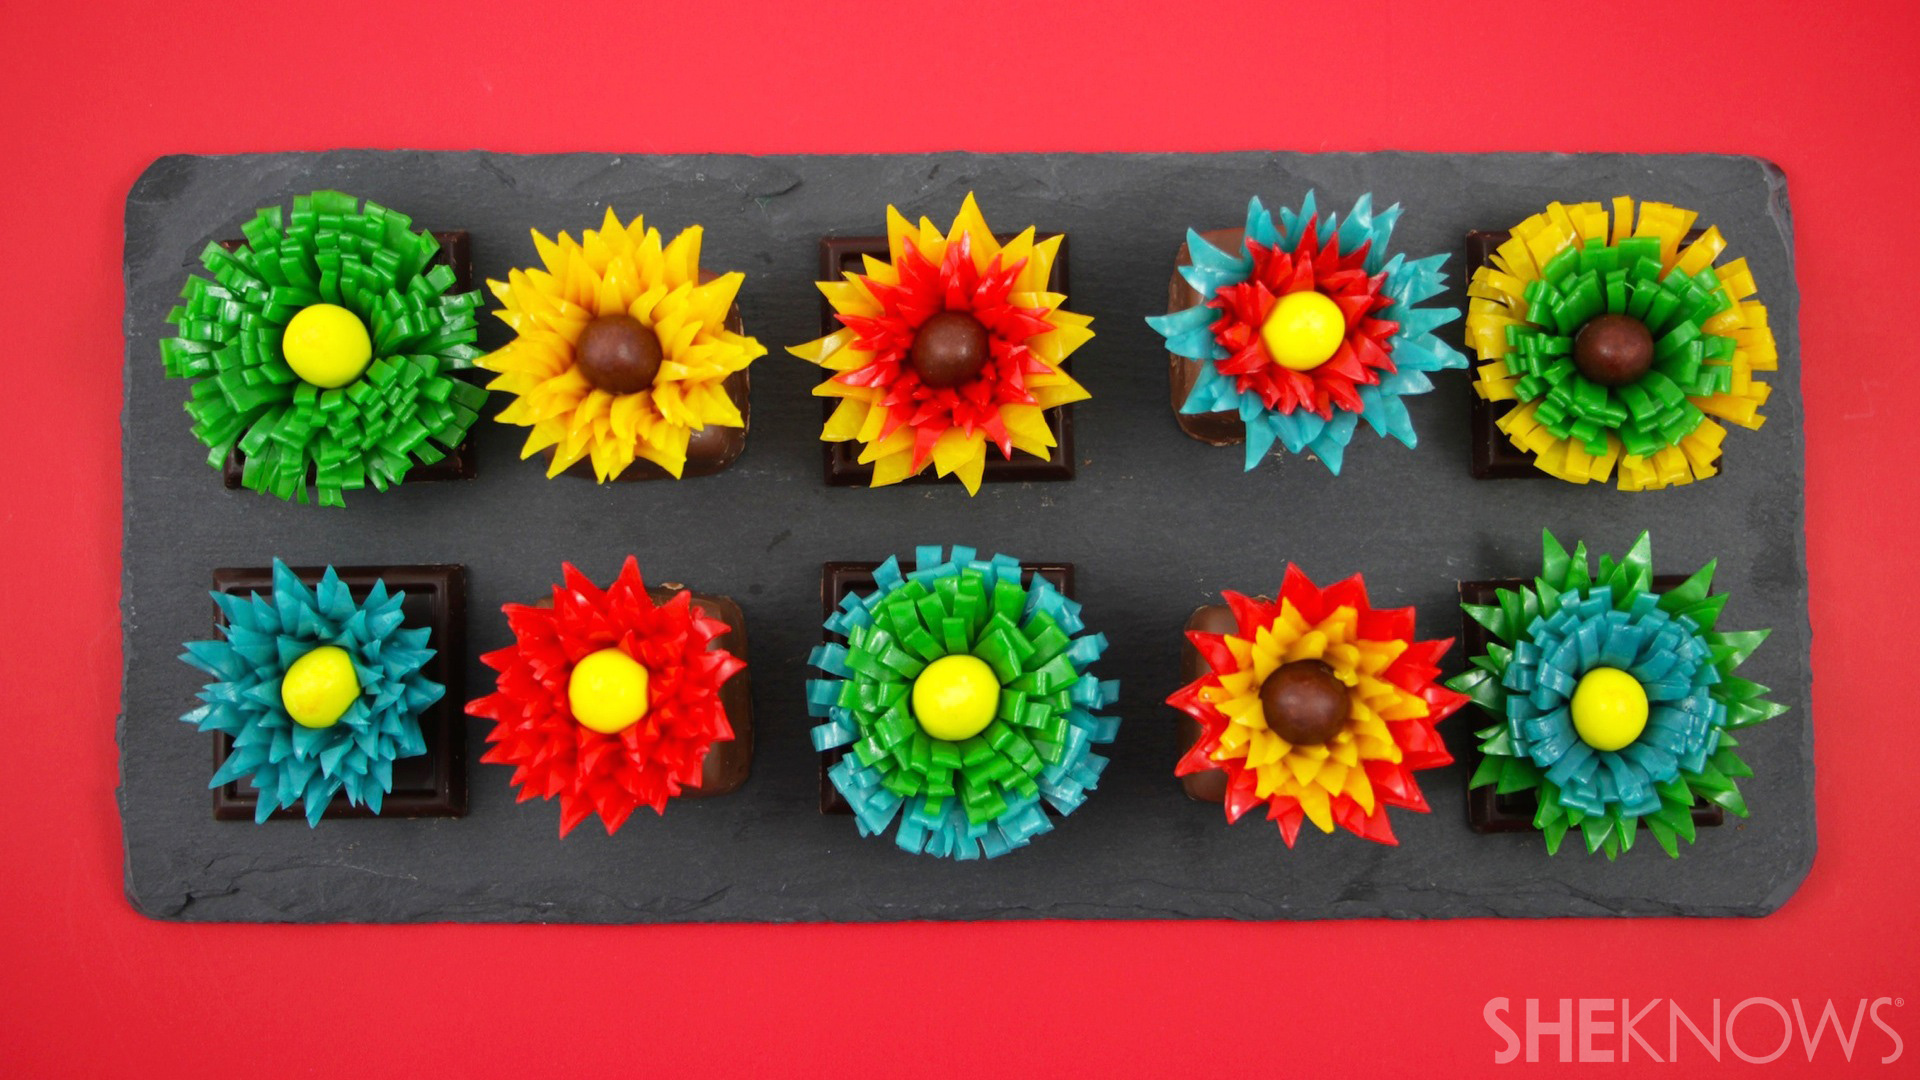 Fantastical Fruit Roll-Ups flowers